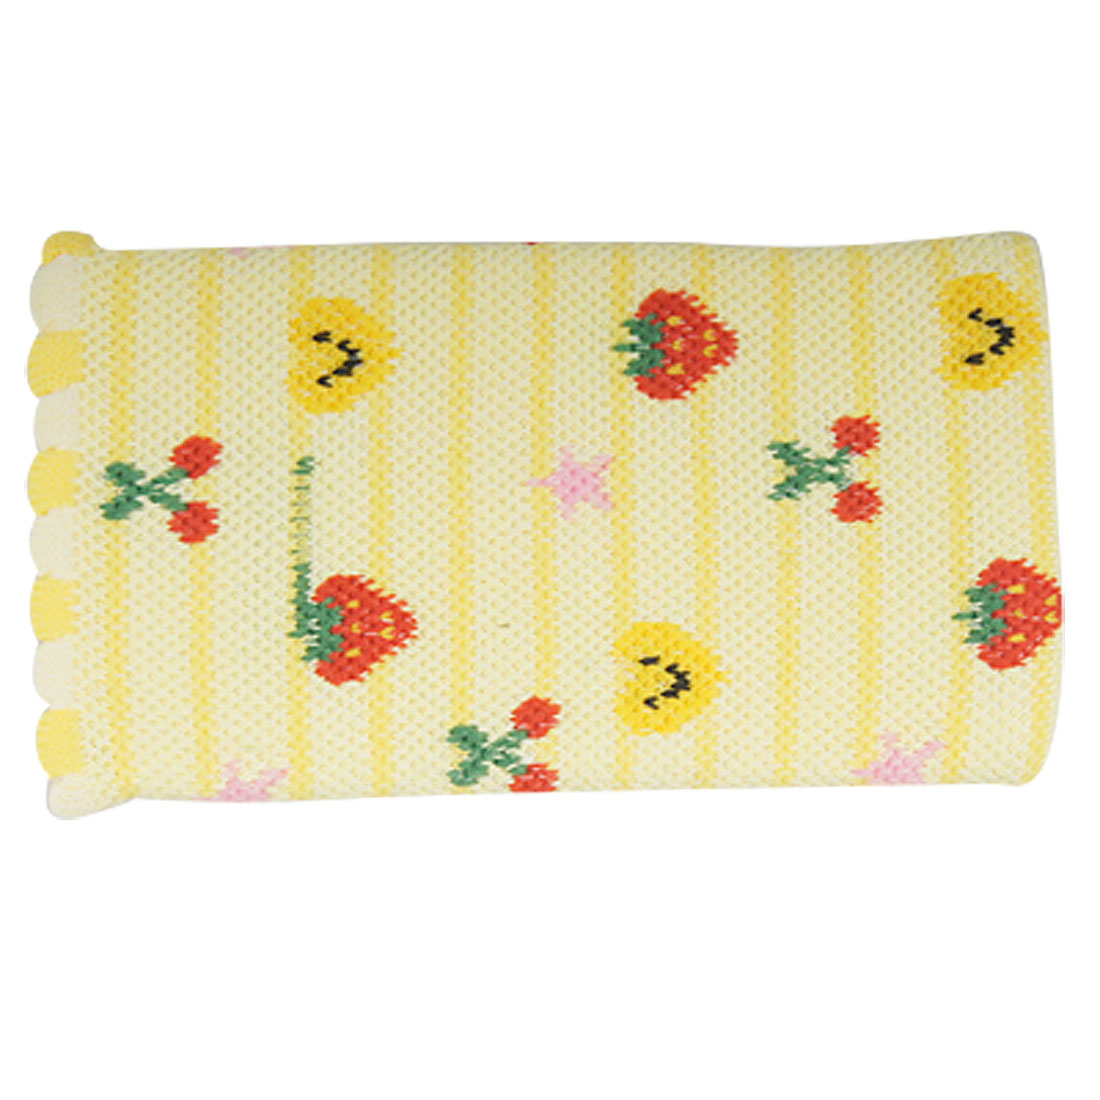 Phone Scallop Cuff Heart Star Strawberry Prints Elastic Pouch Bag Yellow